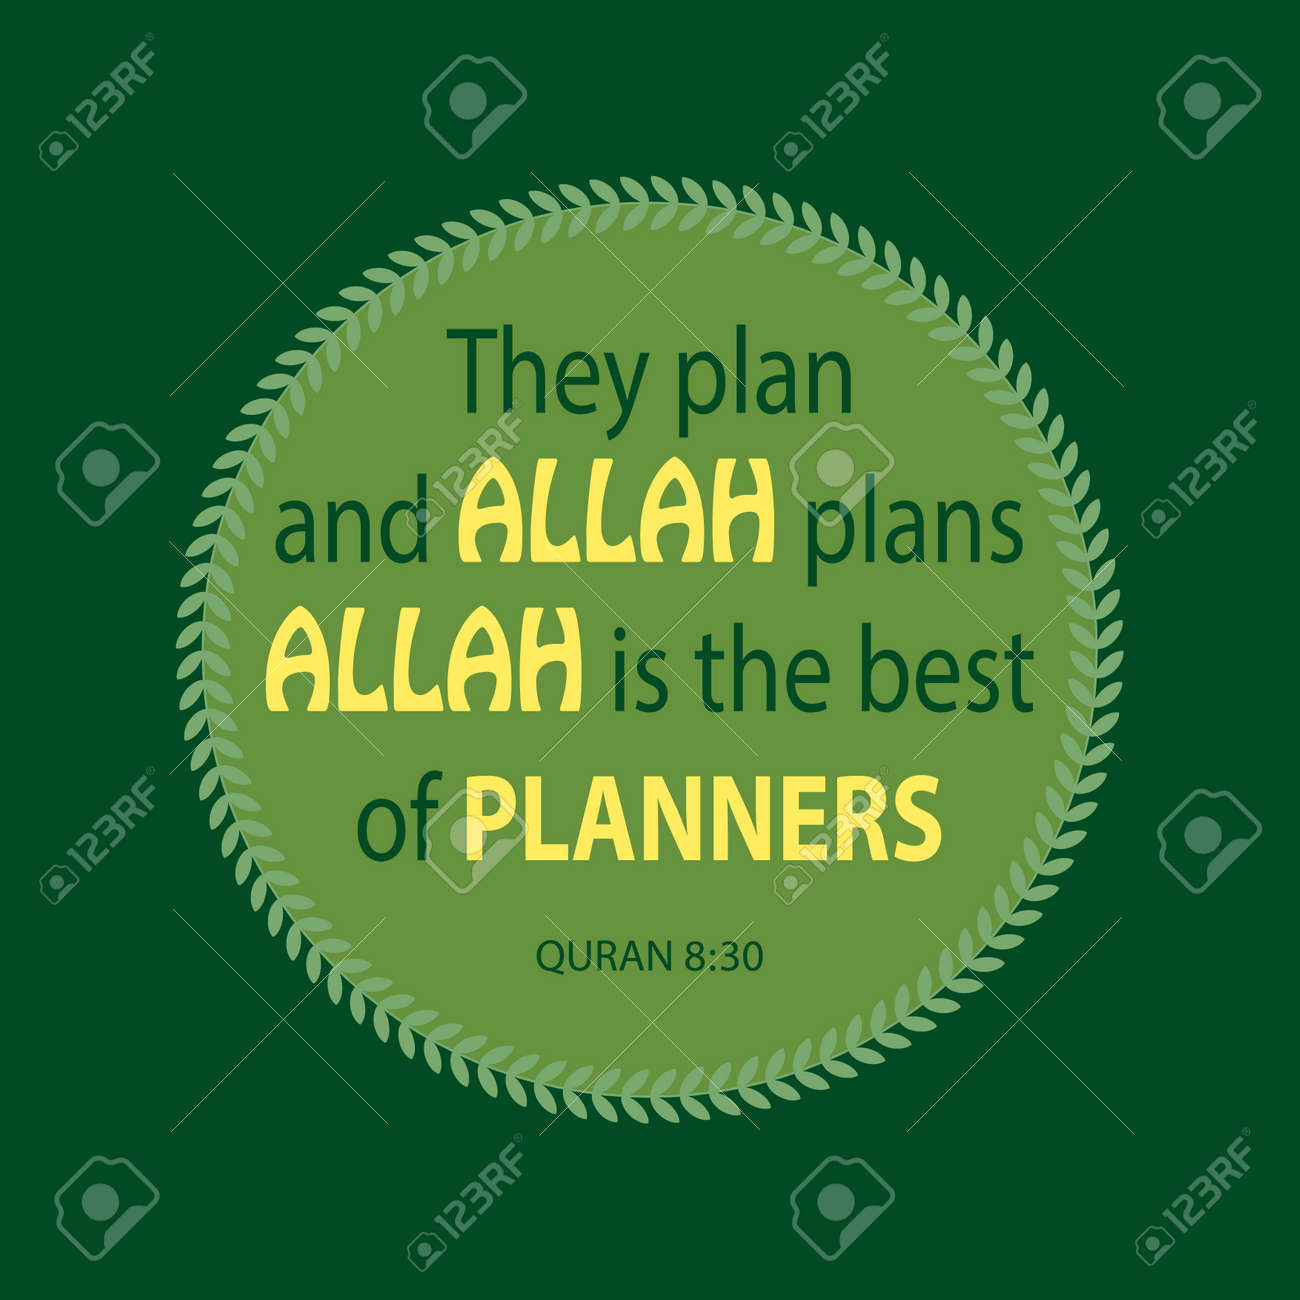 They plan and Allah plans. Allah is the best of planners. Quote..